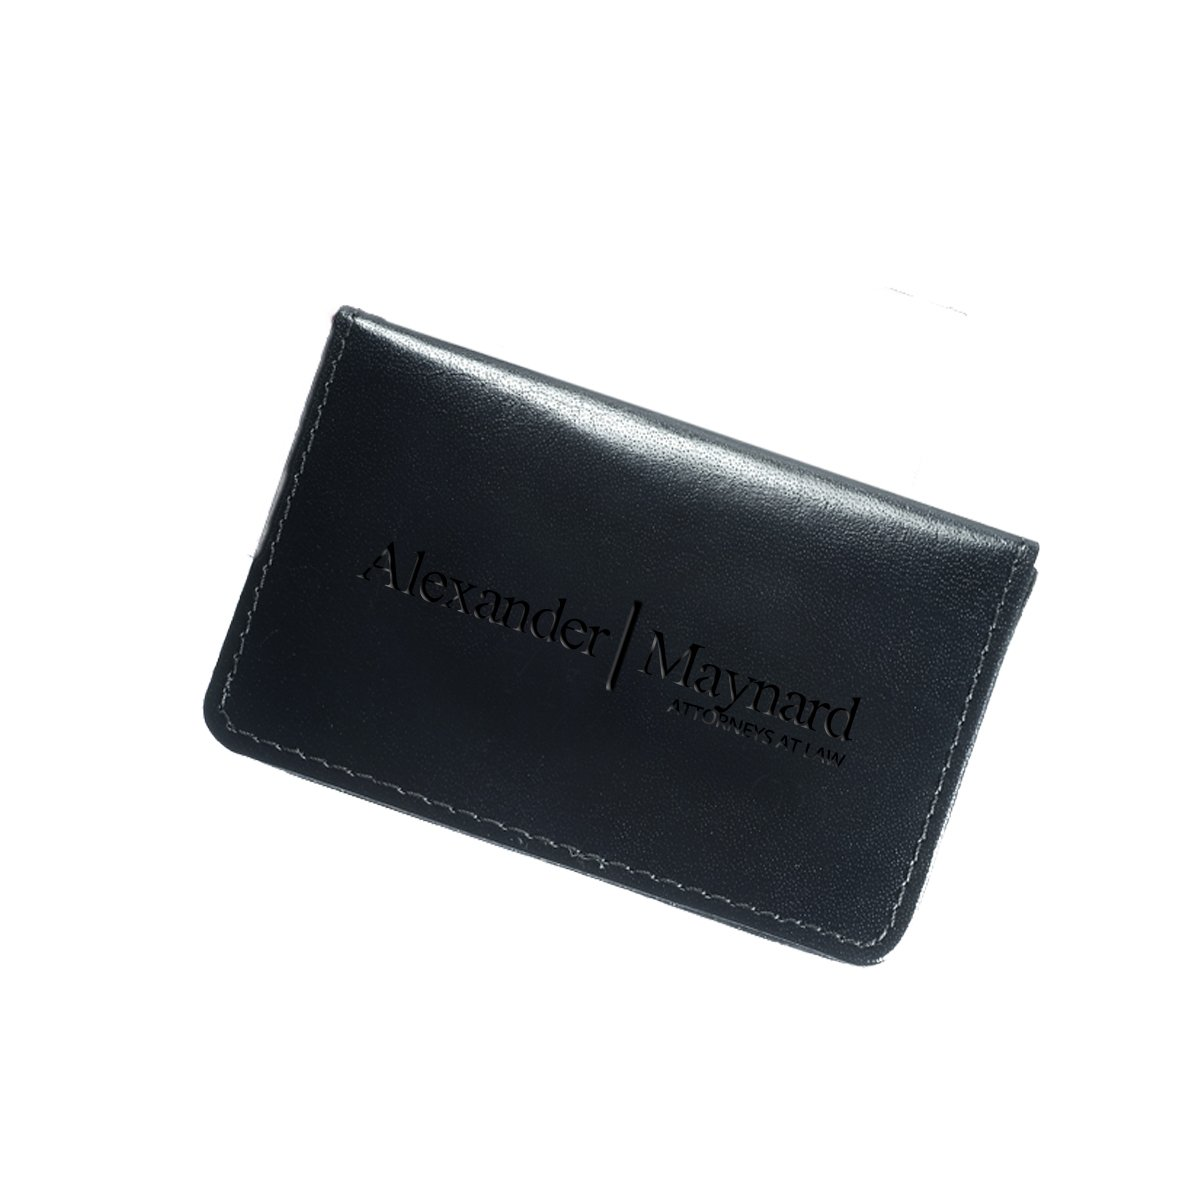 Personalized Leather Business Card Holders